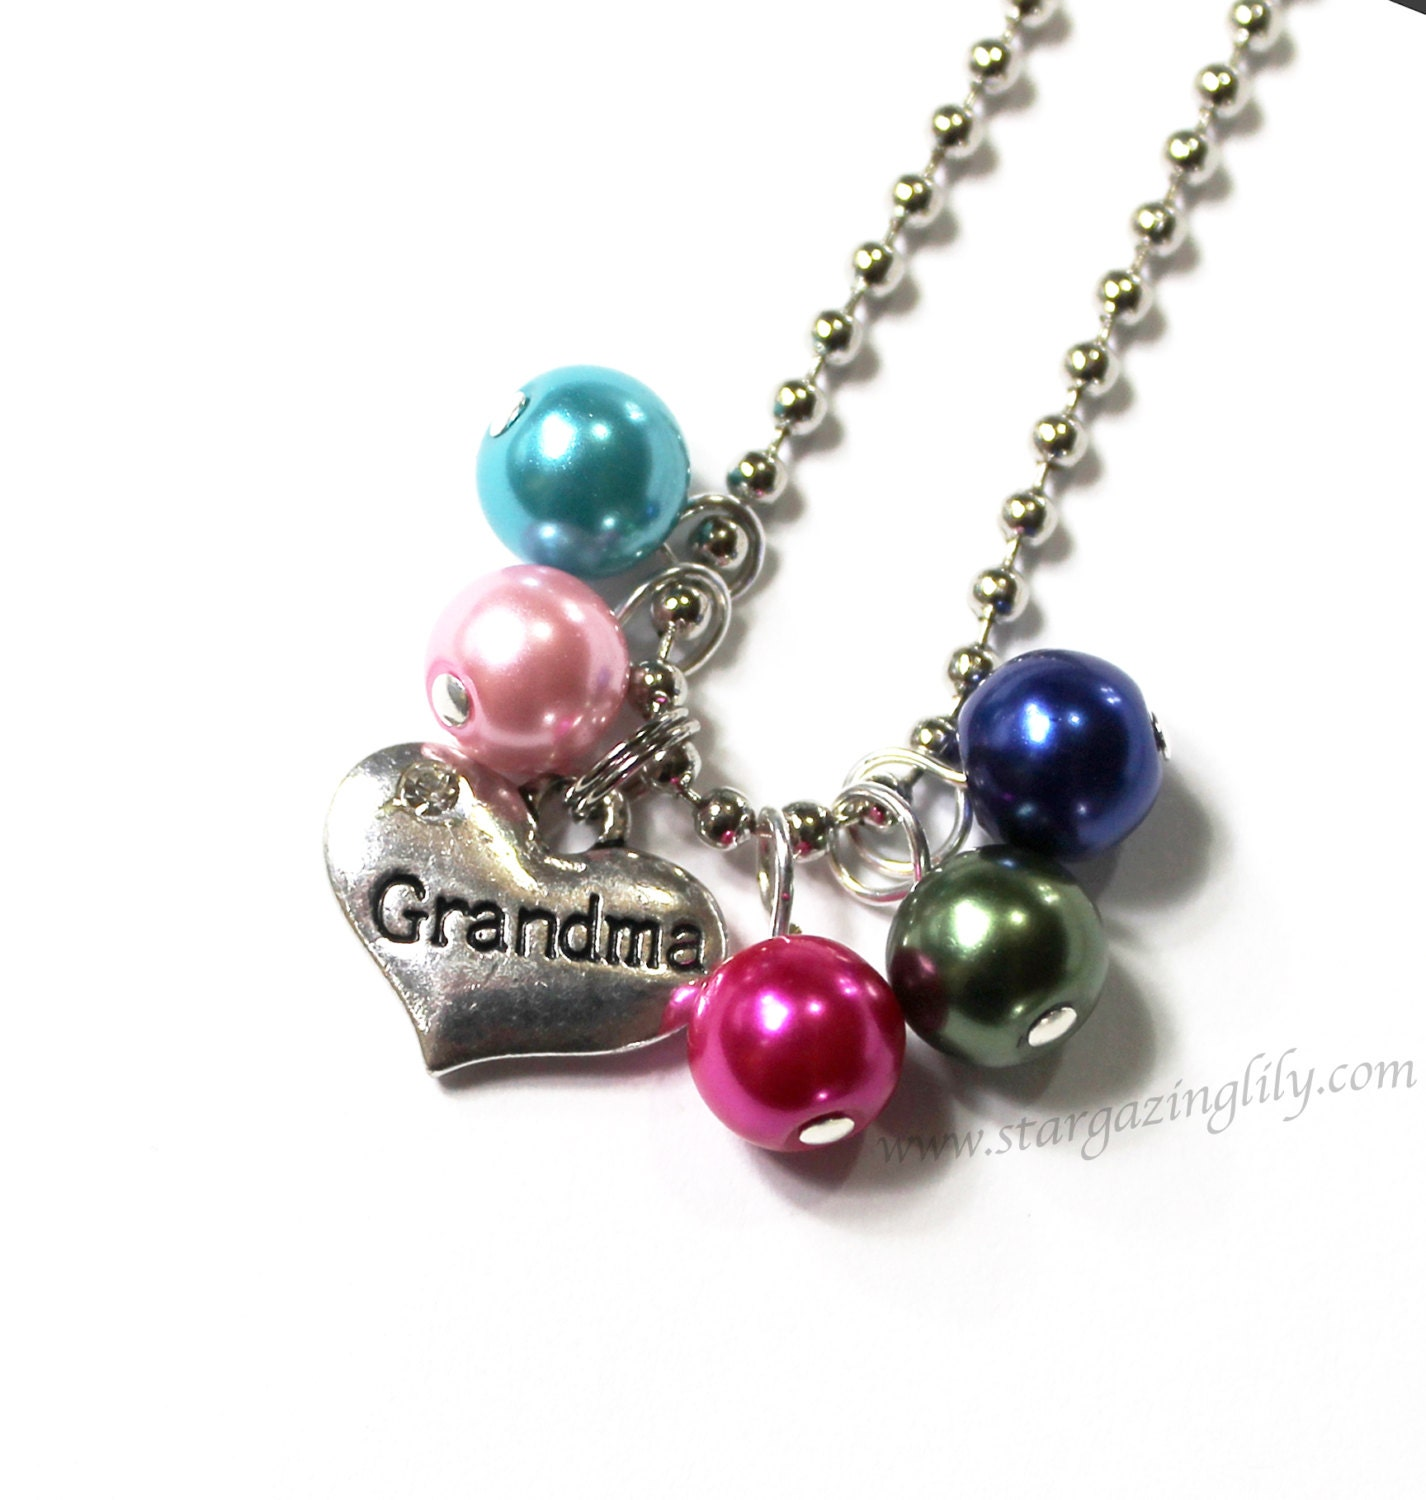 One charm necklace you choose mother grandma grandmother gift for Grandmother jewelry you can add to